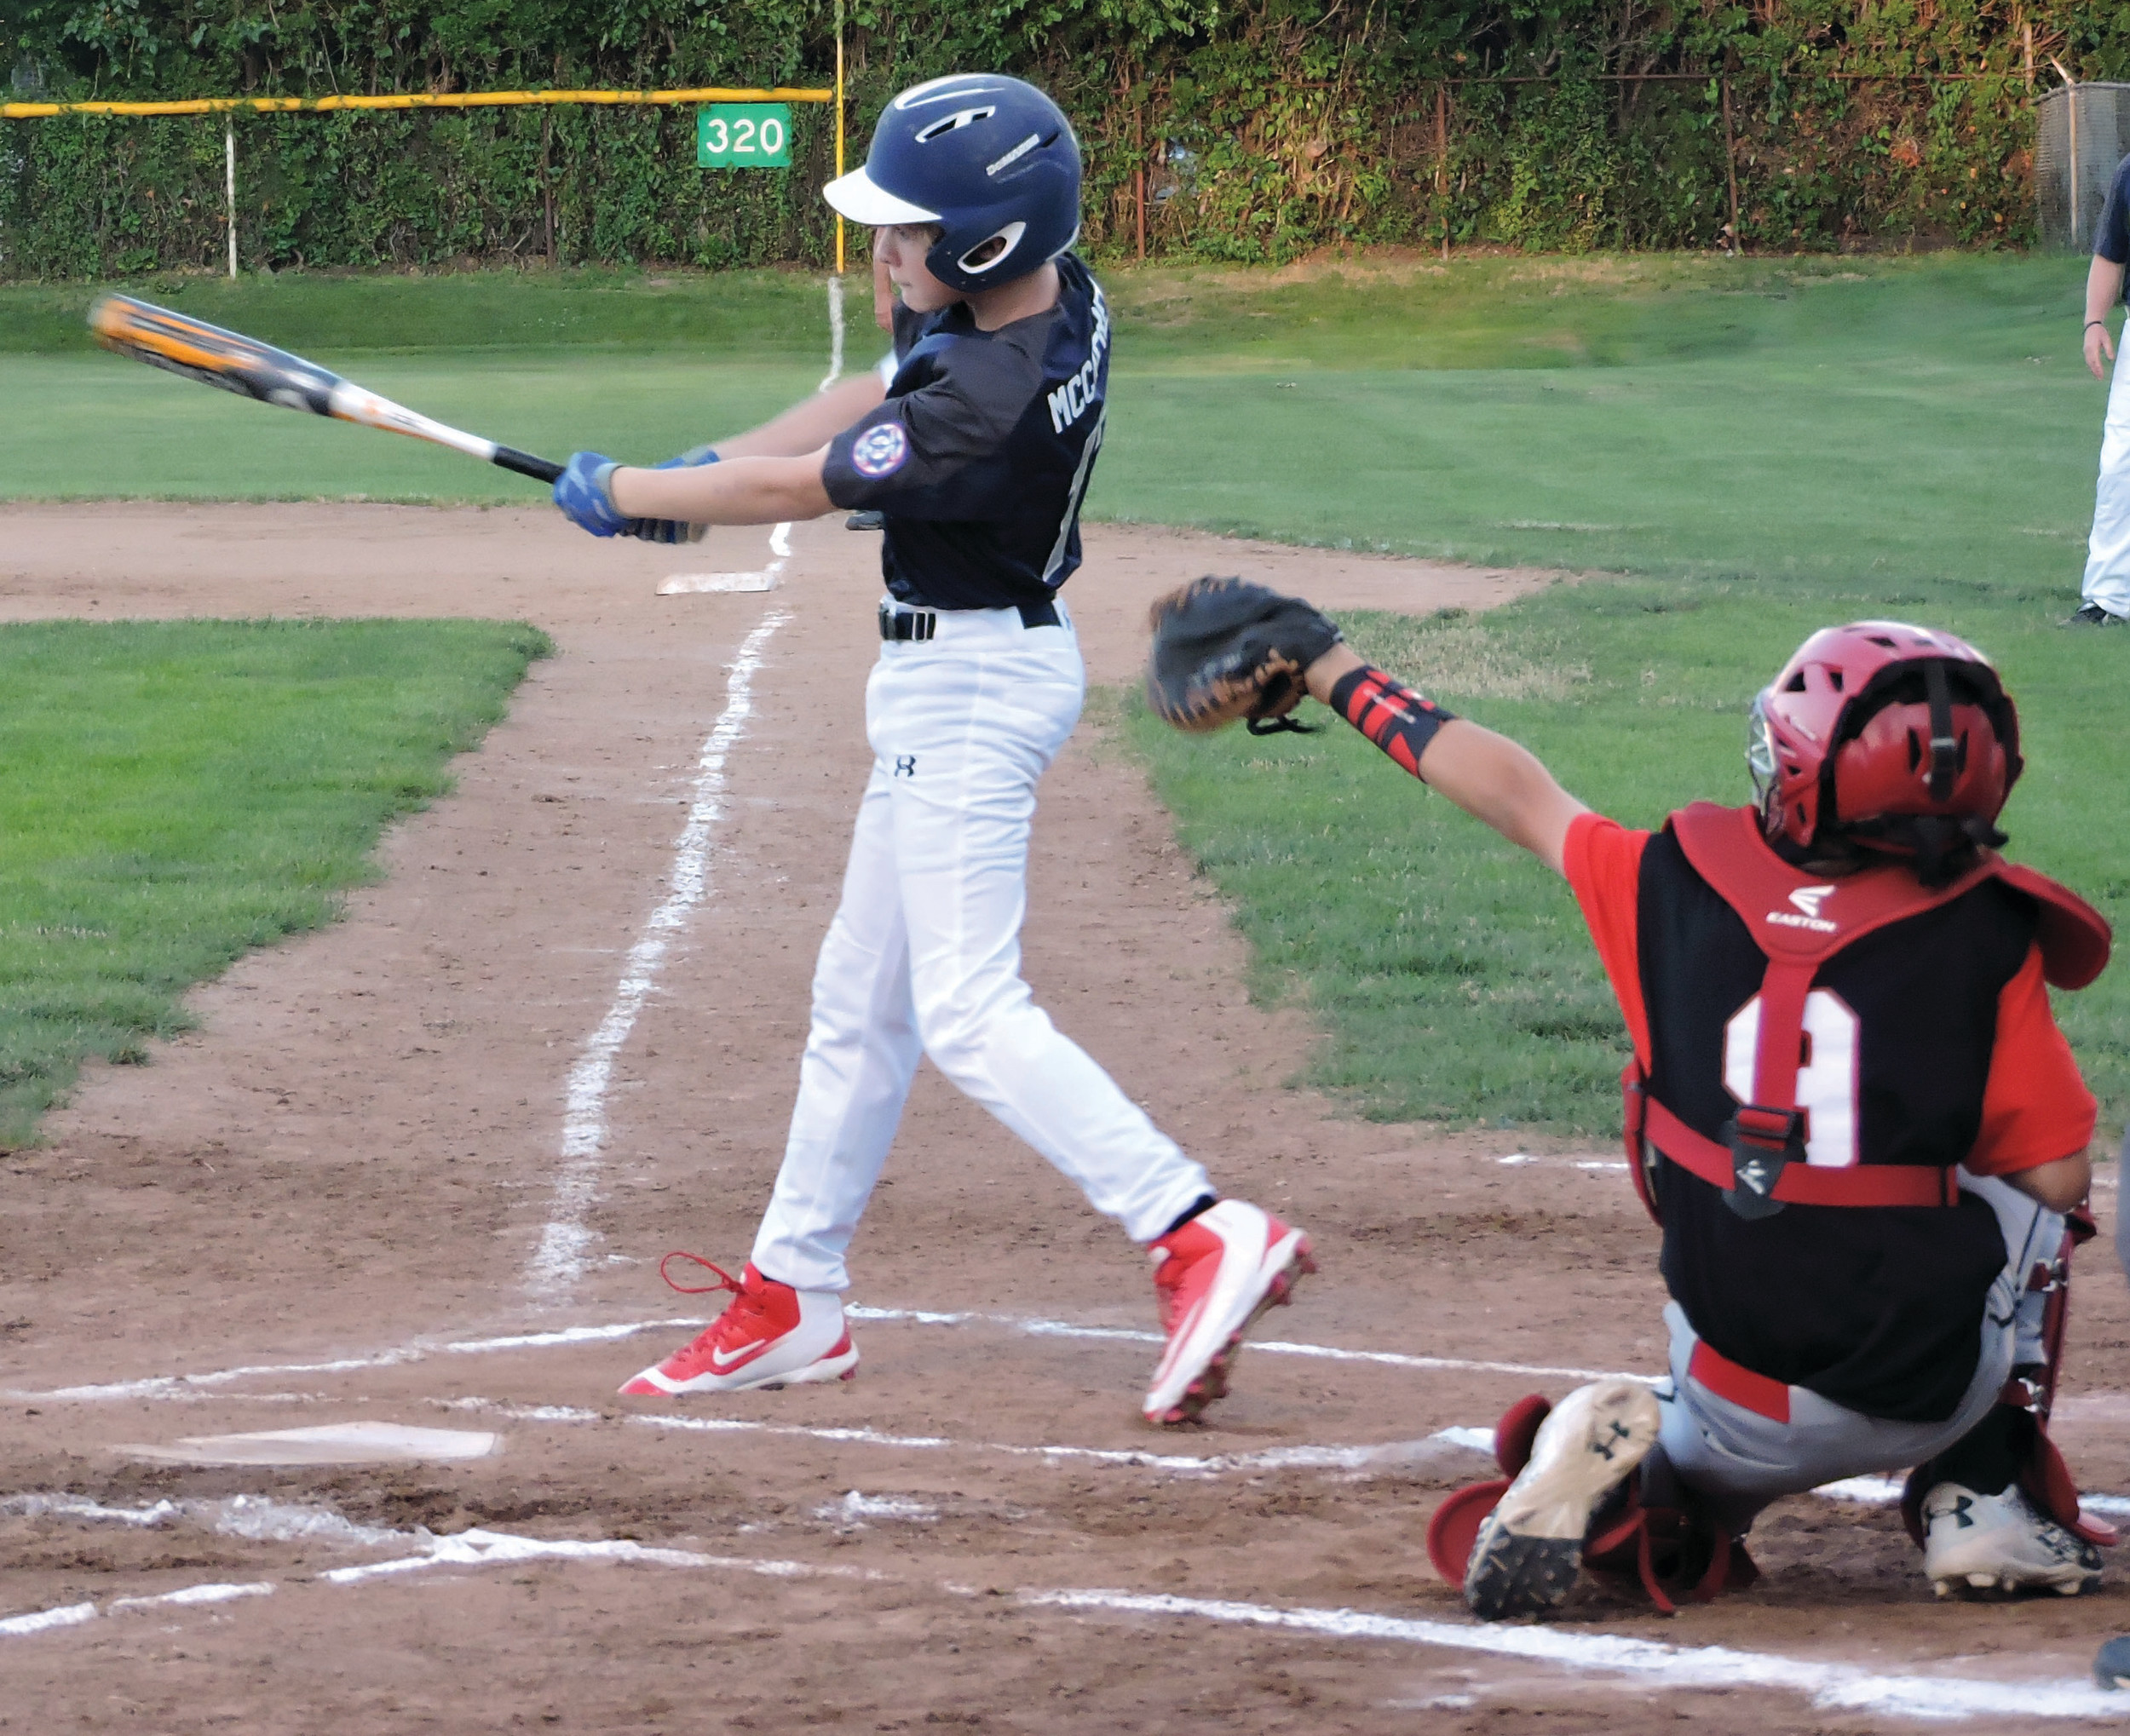 AGGRESSIVE AT THE PLATE: Brendan McCaffrey attacks a pitch in the zone.